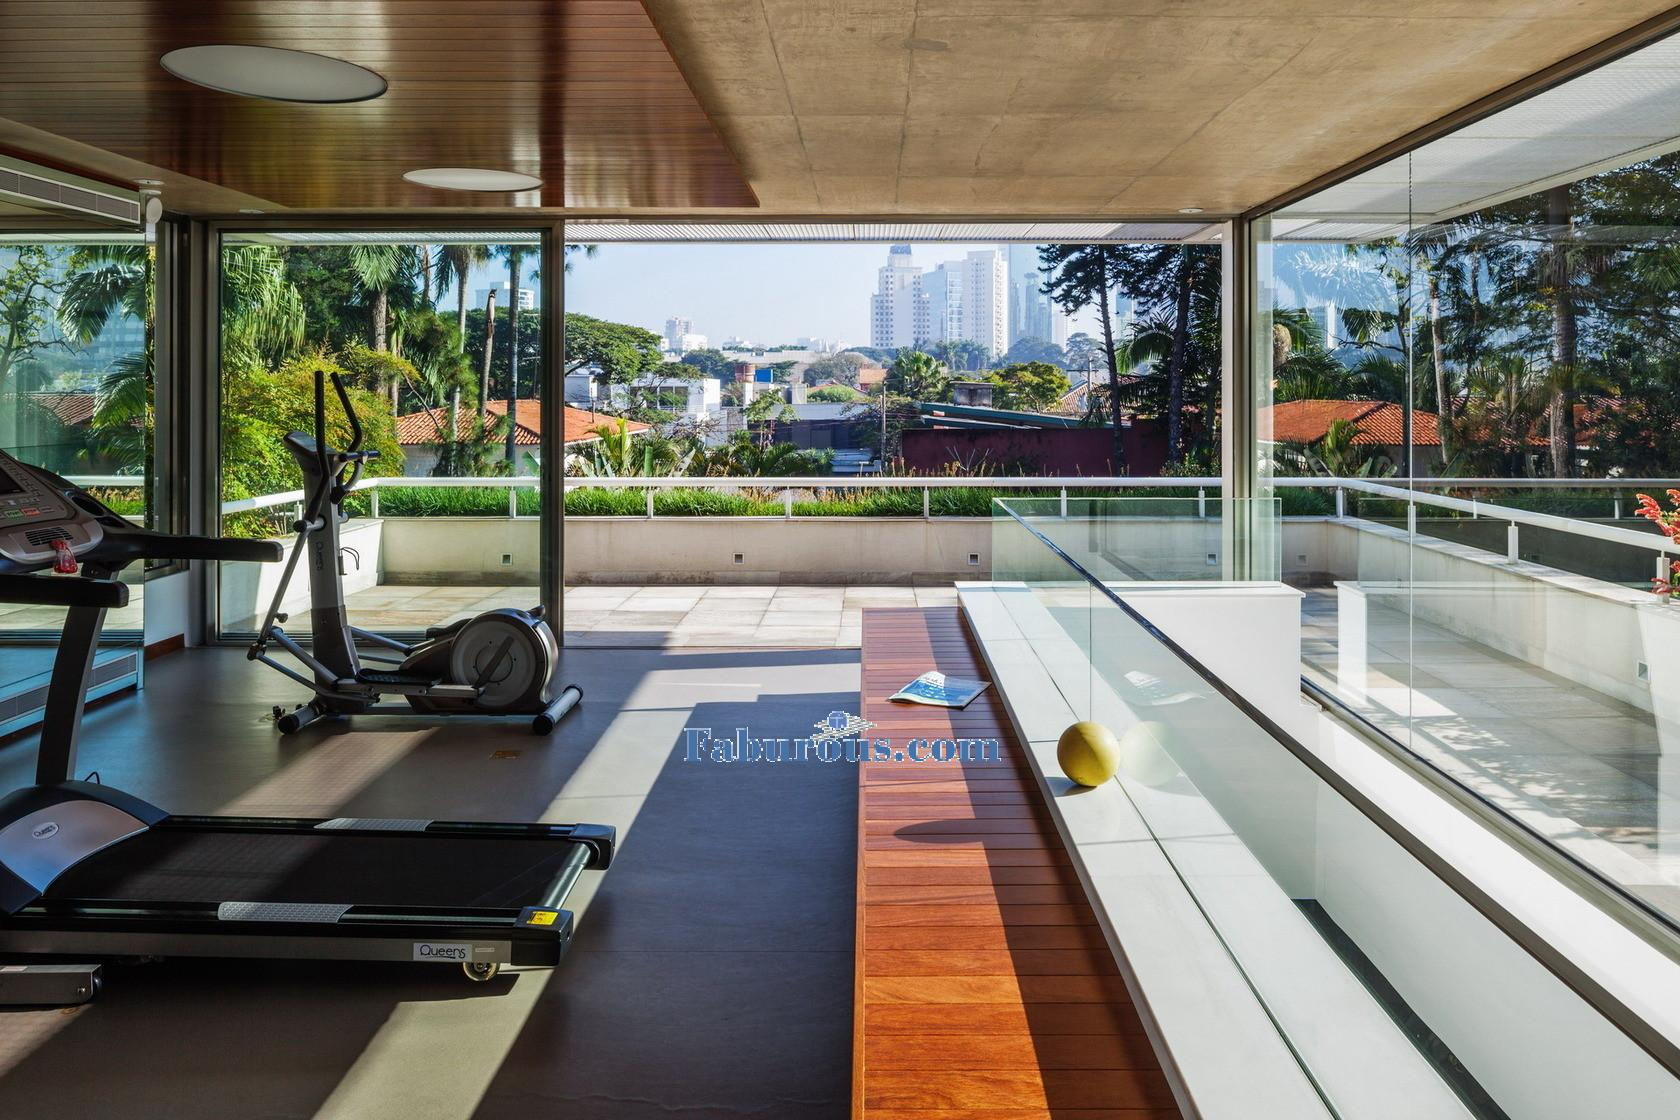 Open space brazilian modern house design Living room gym